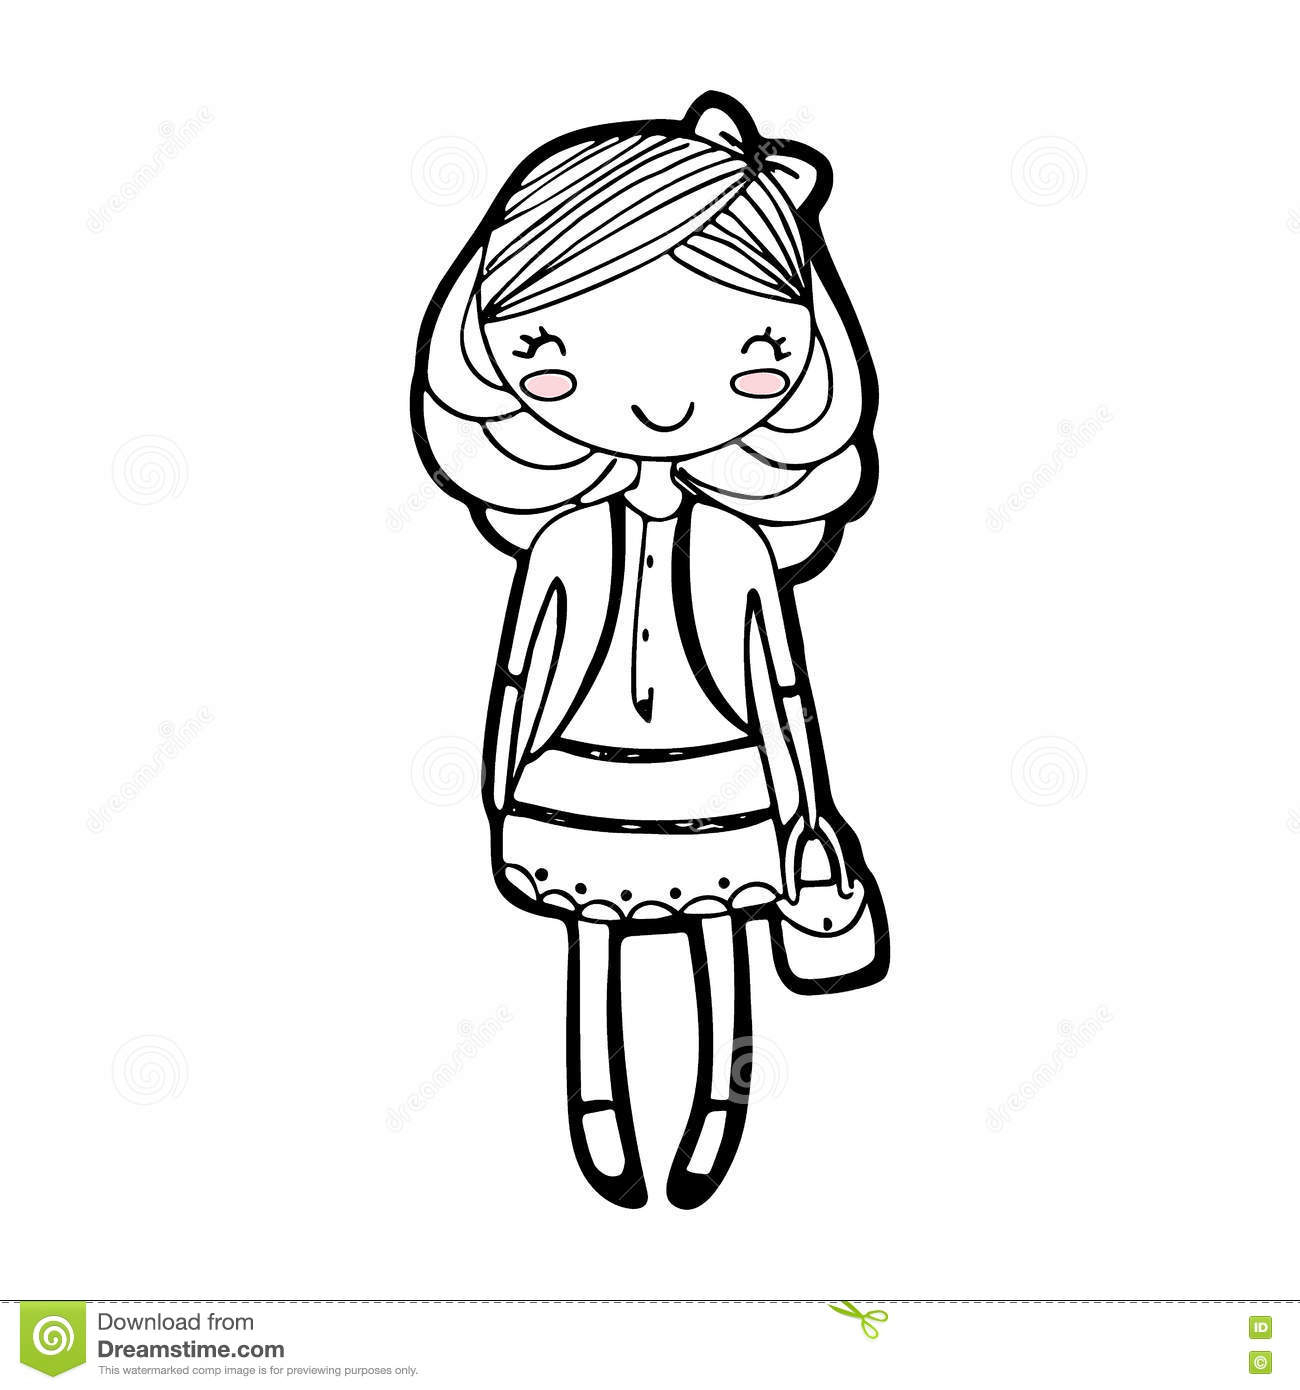 1300x1390 Girl Cartoon Drawing Cute Girl Cartoon Drawing Sketch Vector Stock